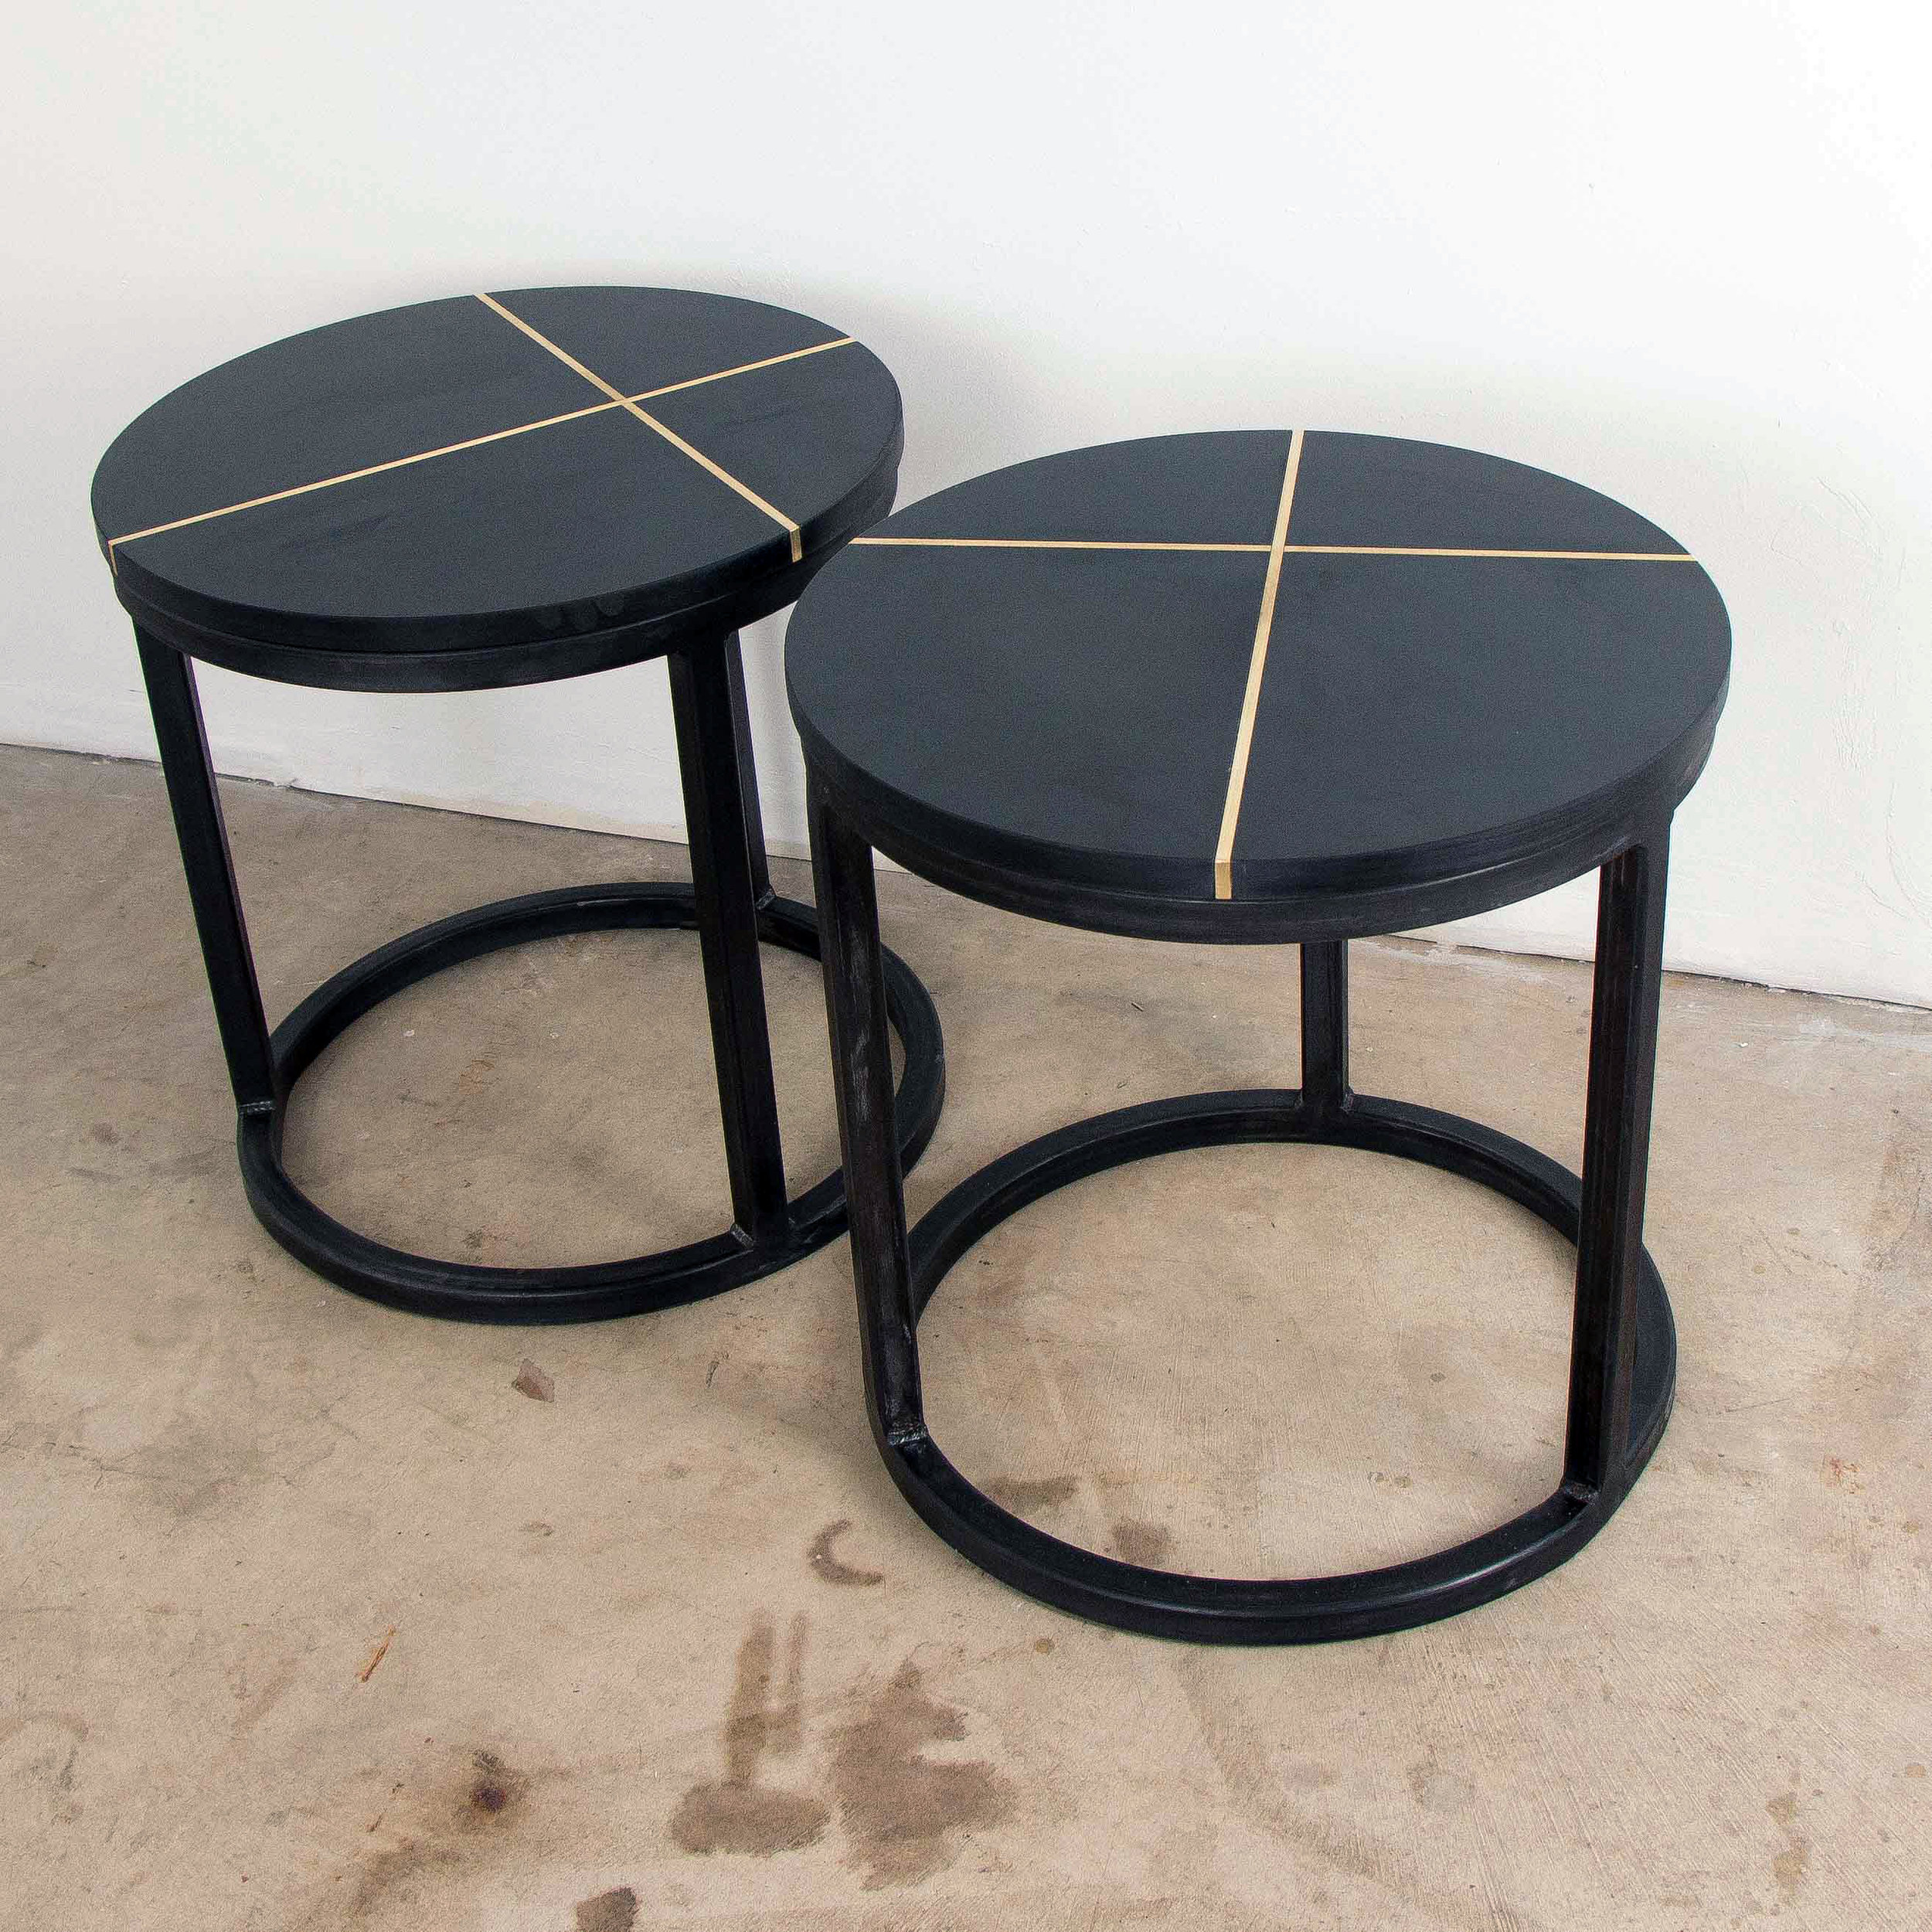 Phenolic Brass Round Side Table